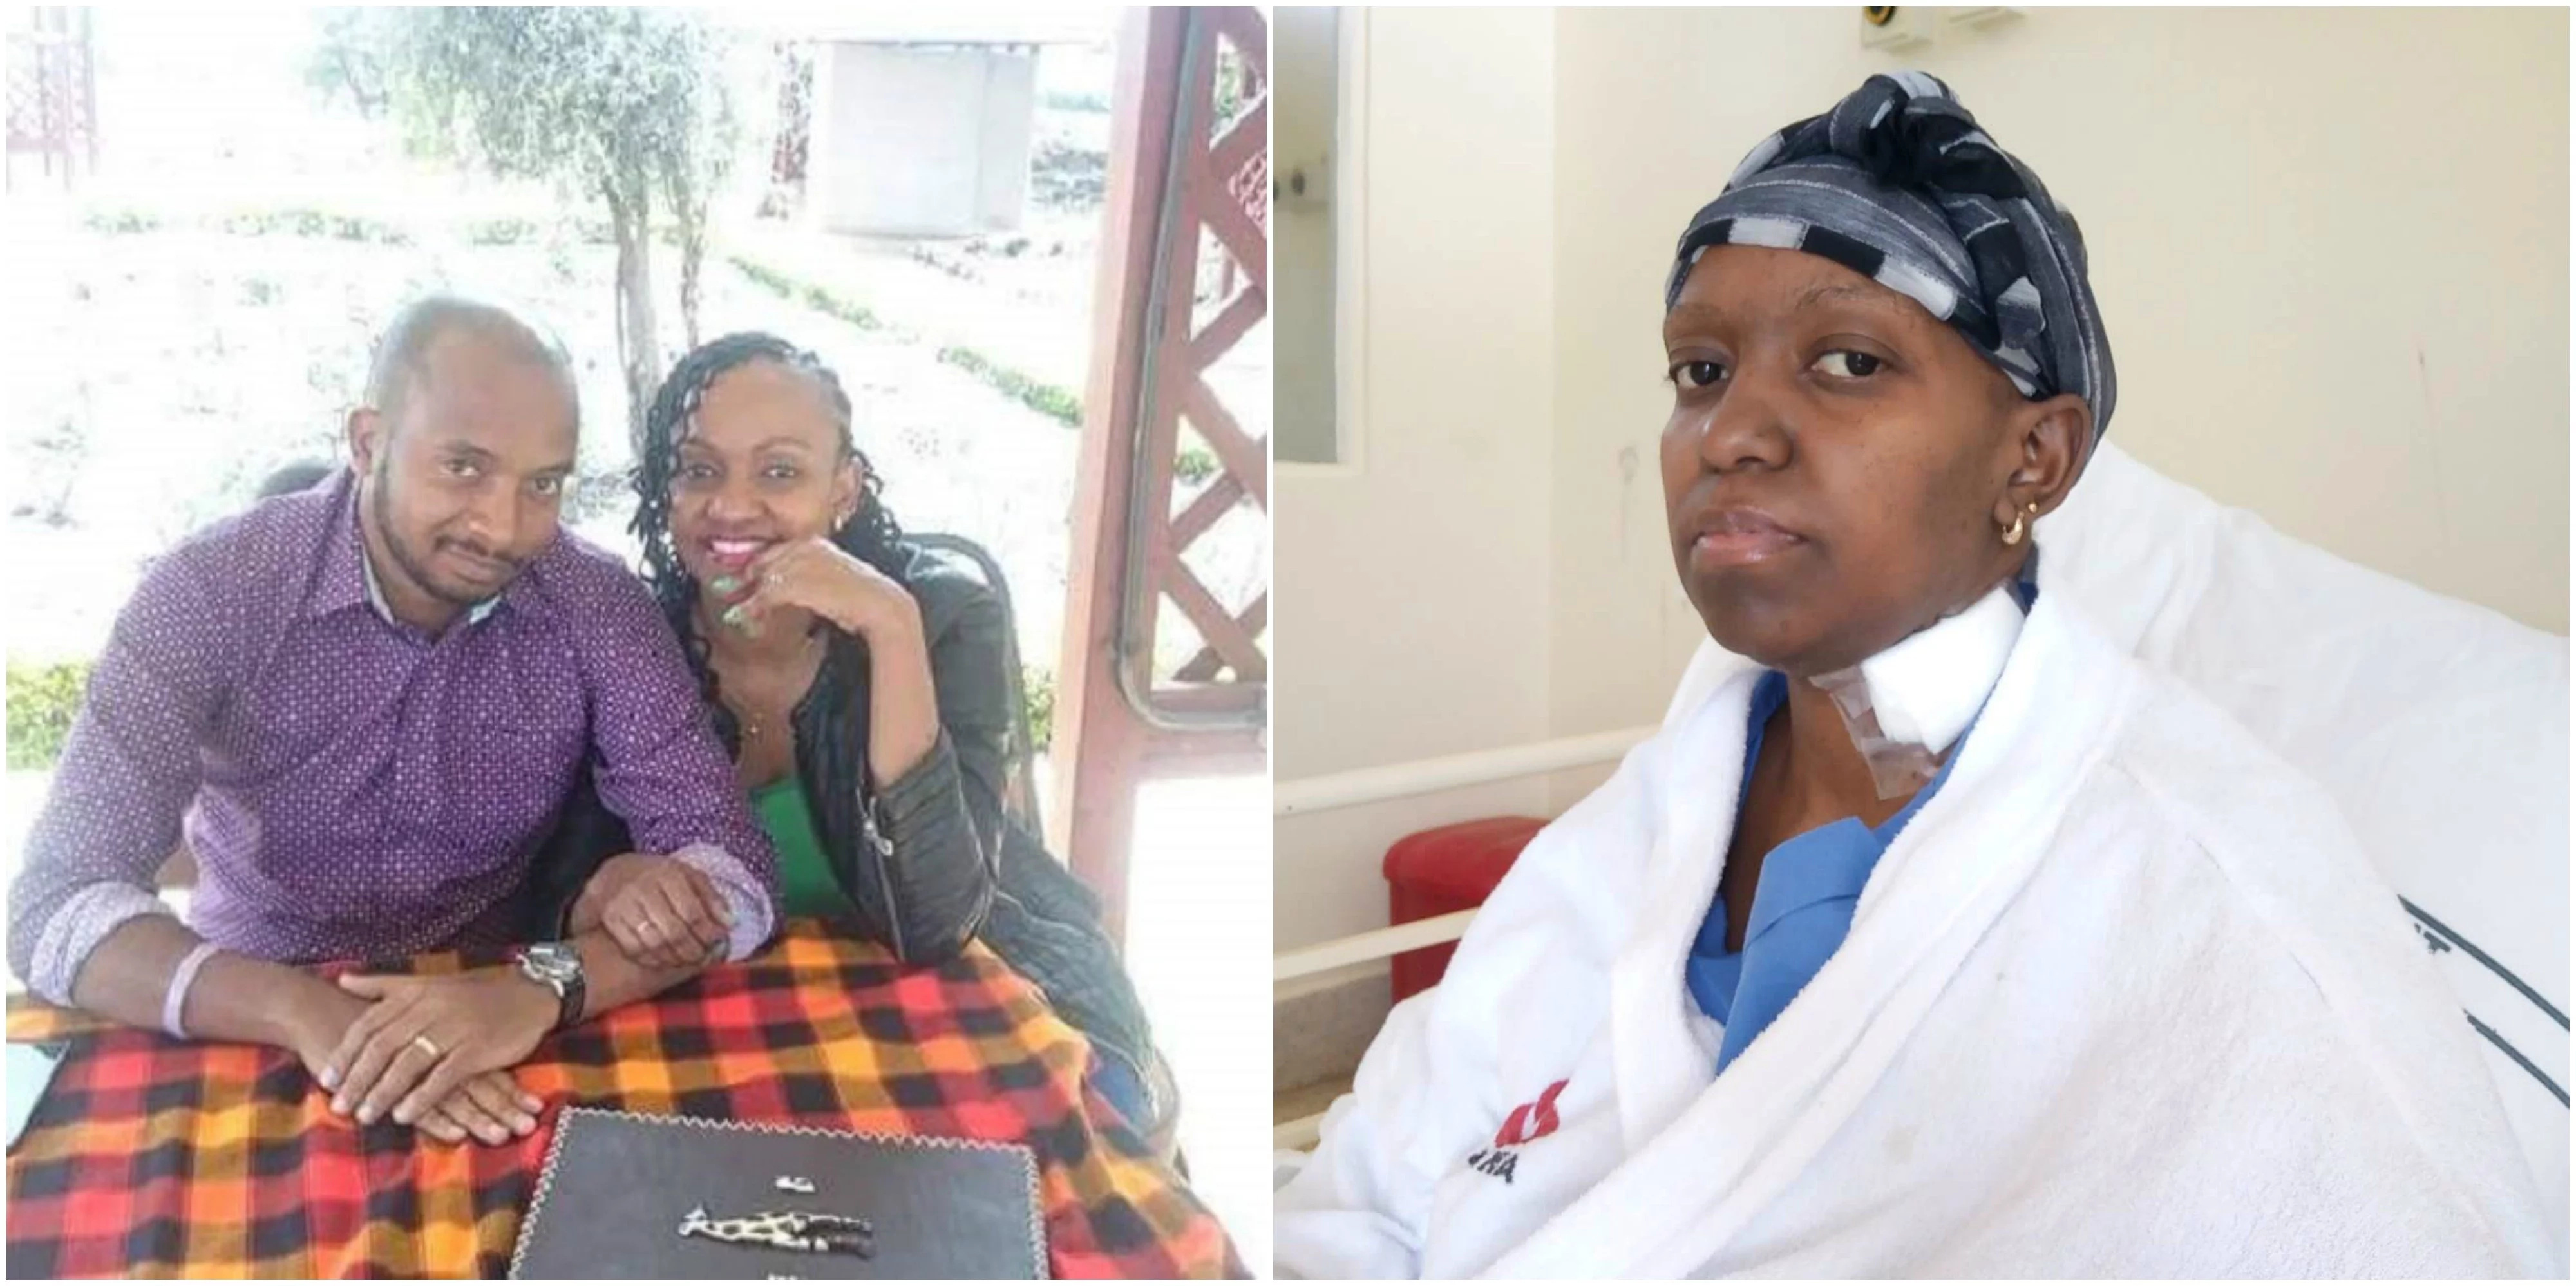 Heartbroken father of two pleads for N25m help as wife undergoes chemo